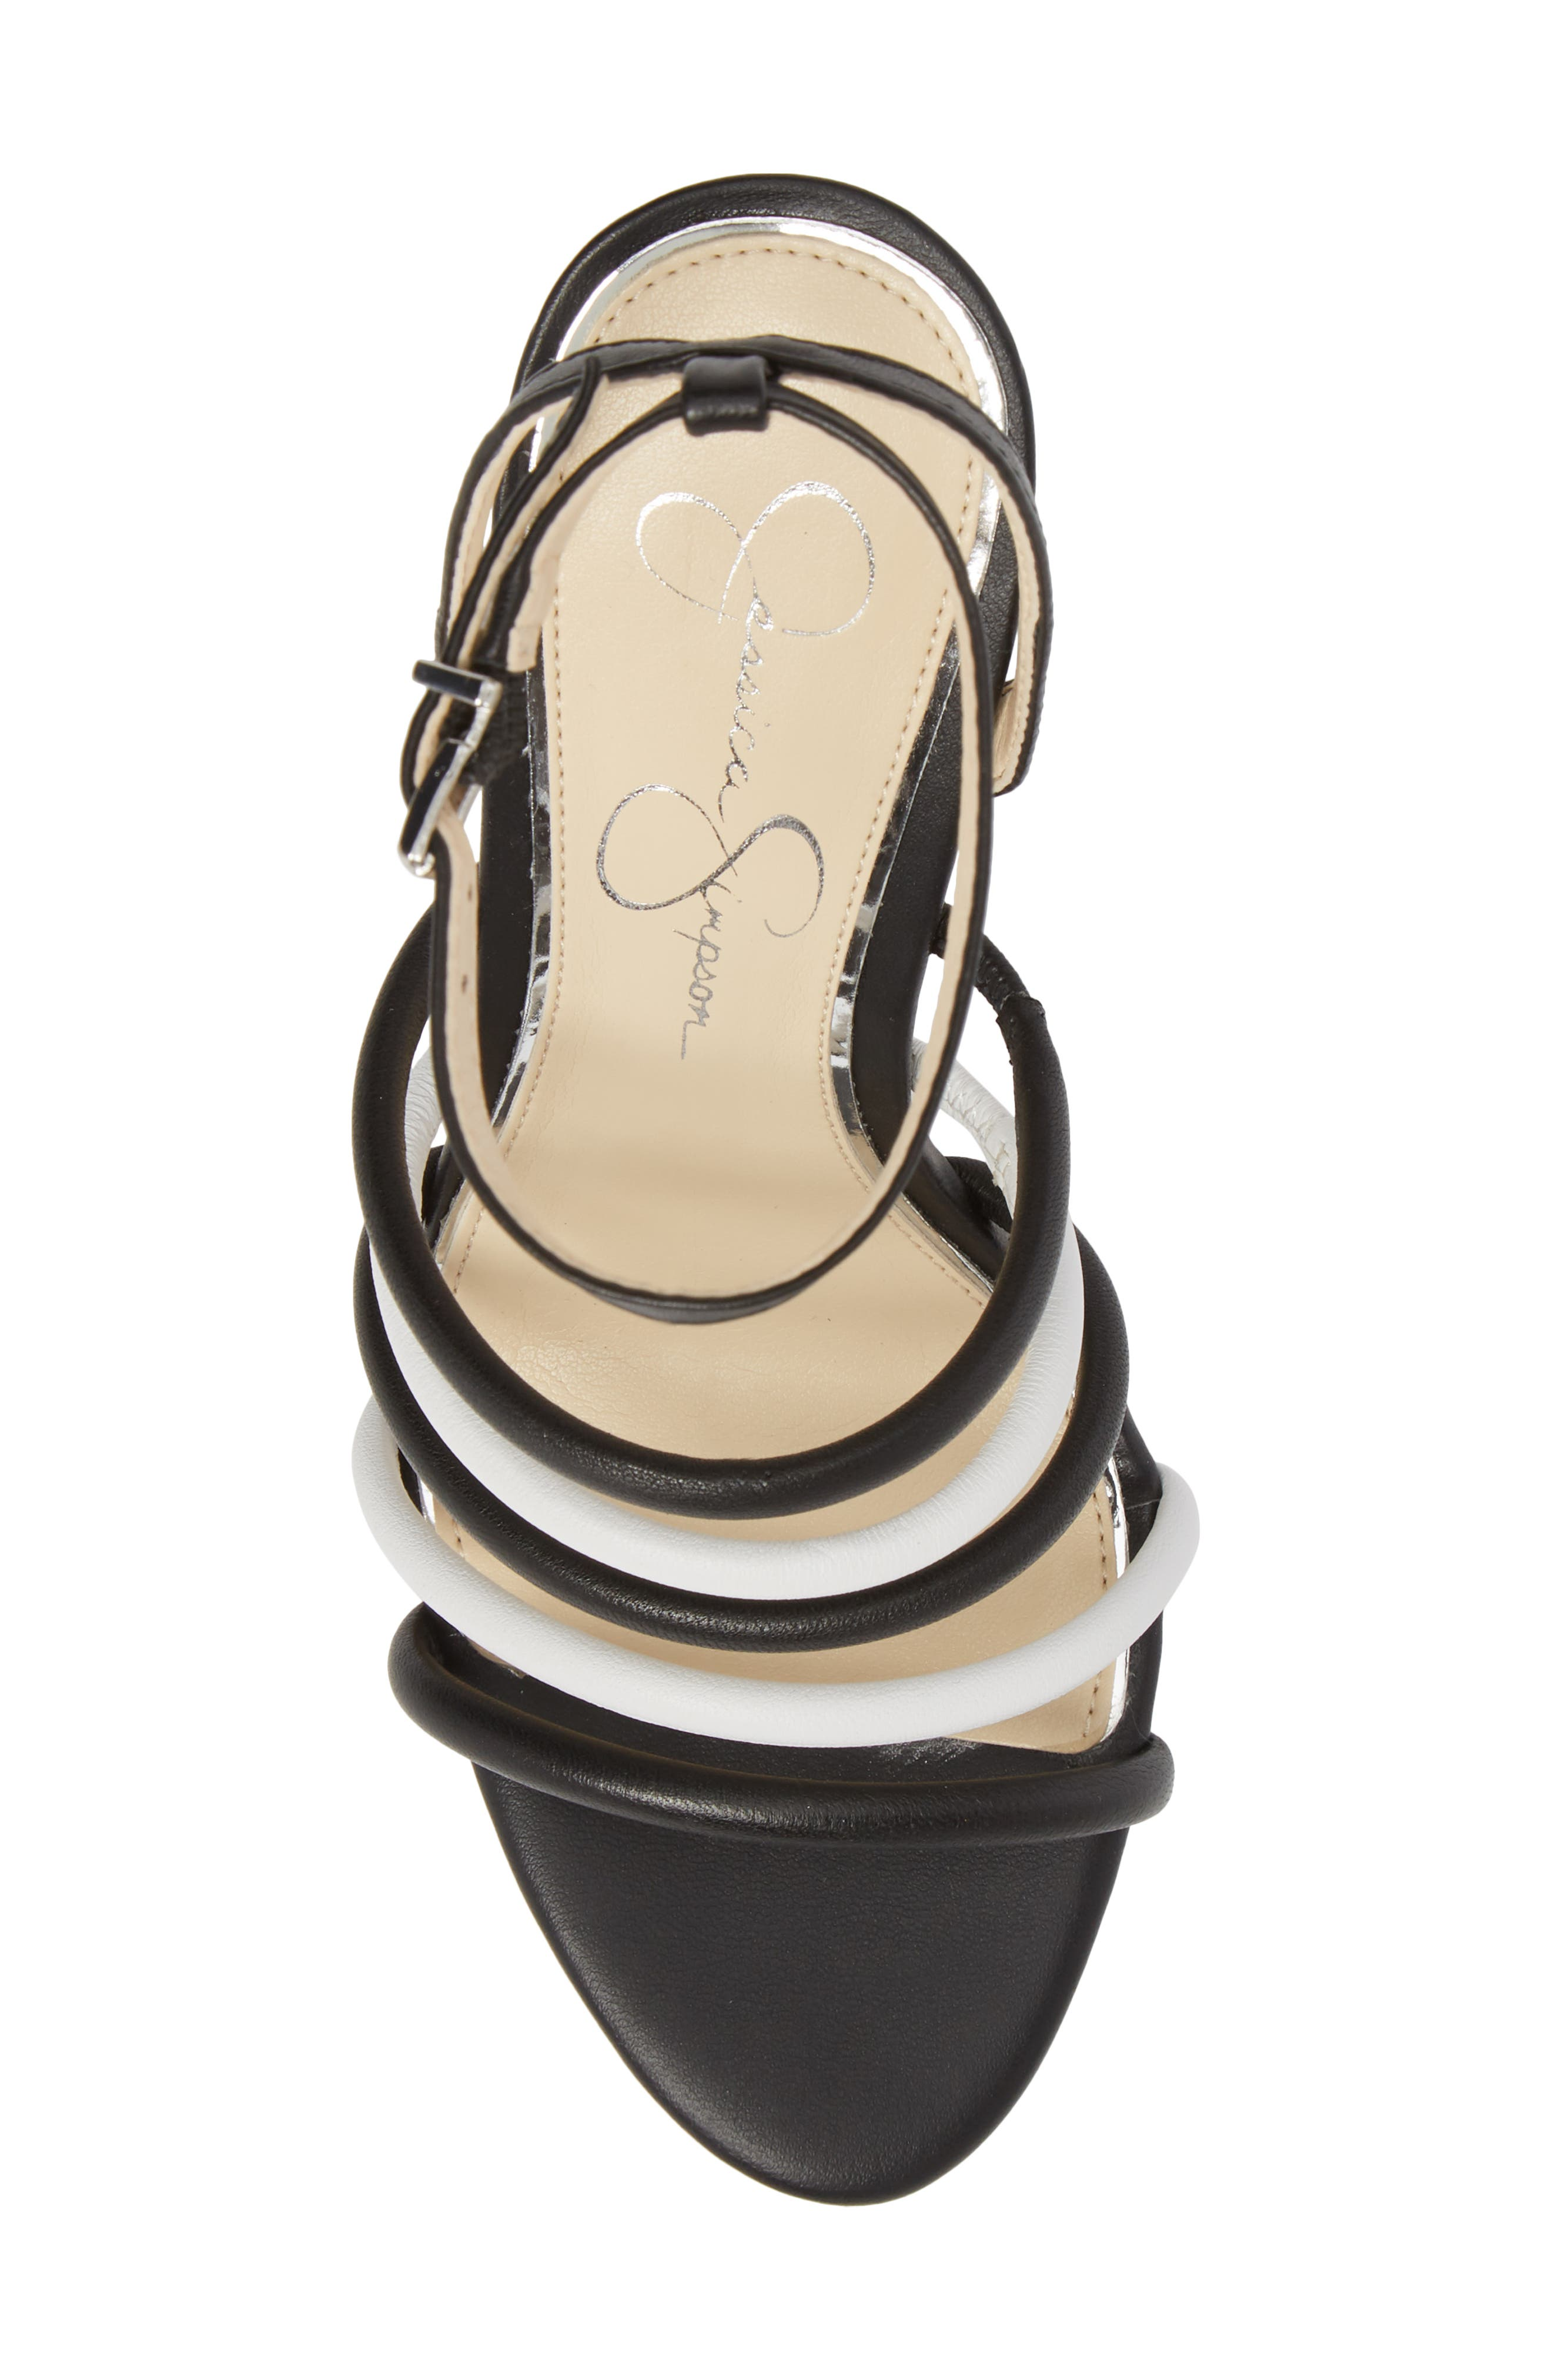 Joselle Strappy Sandal,                             Alternate thumbnail 13, color,